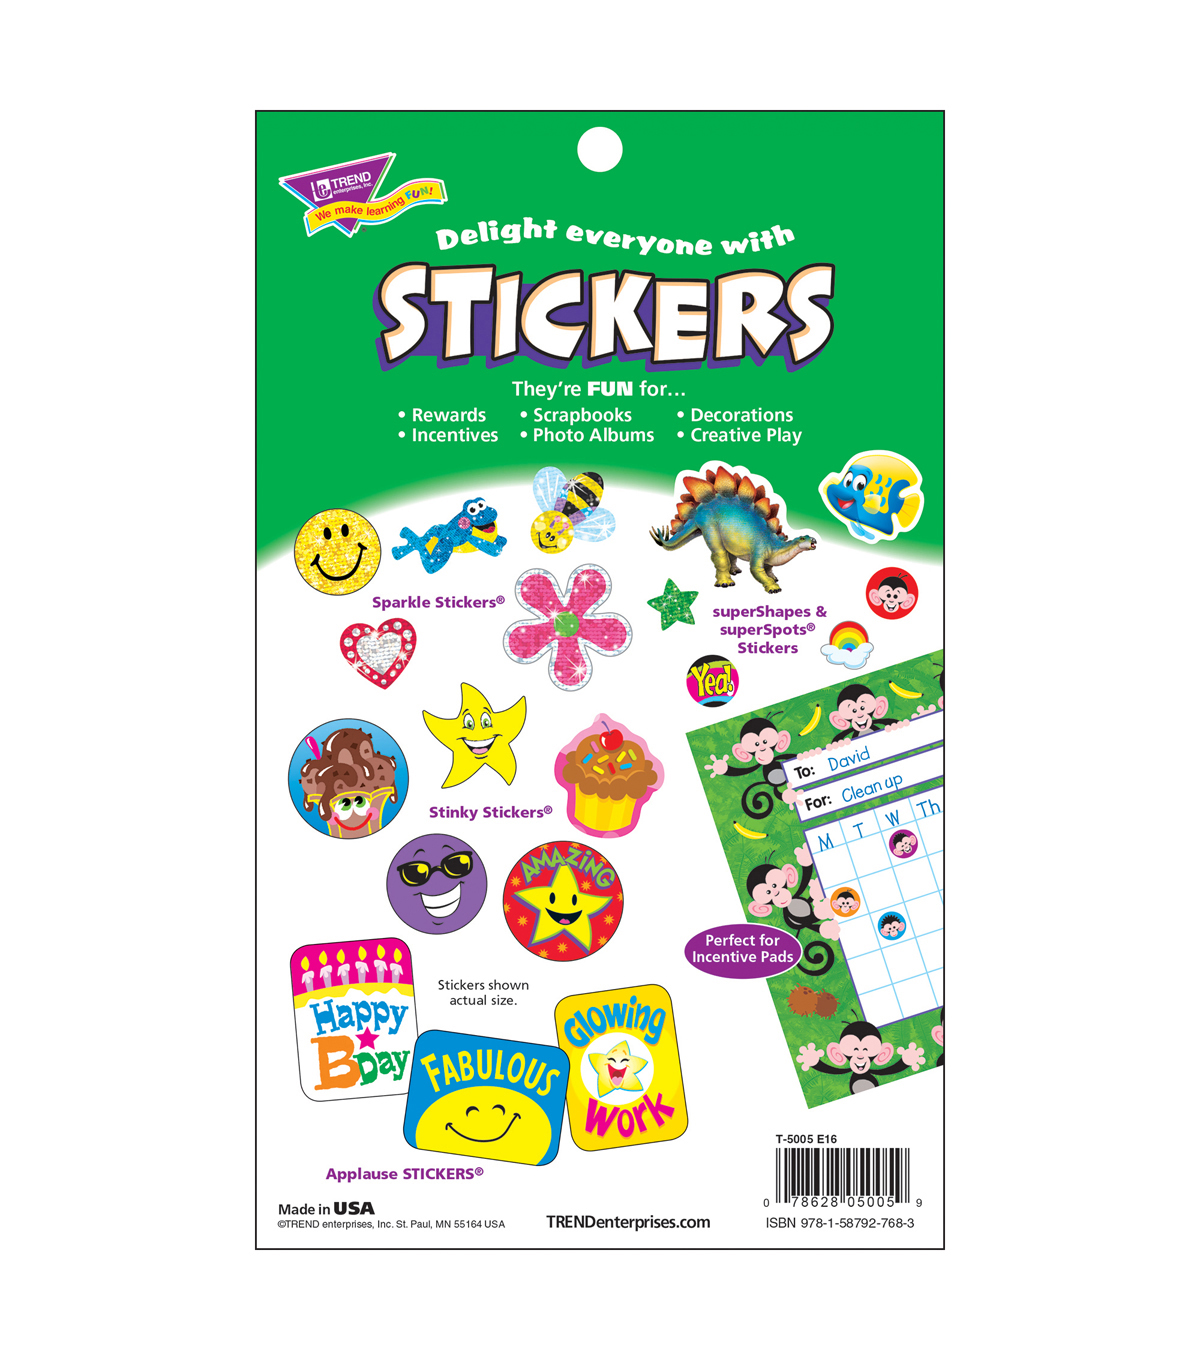 Sparkly Stars, Hearts, & Smiles Sticker Pad 336 Per Pad, 6 Pads